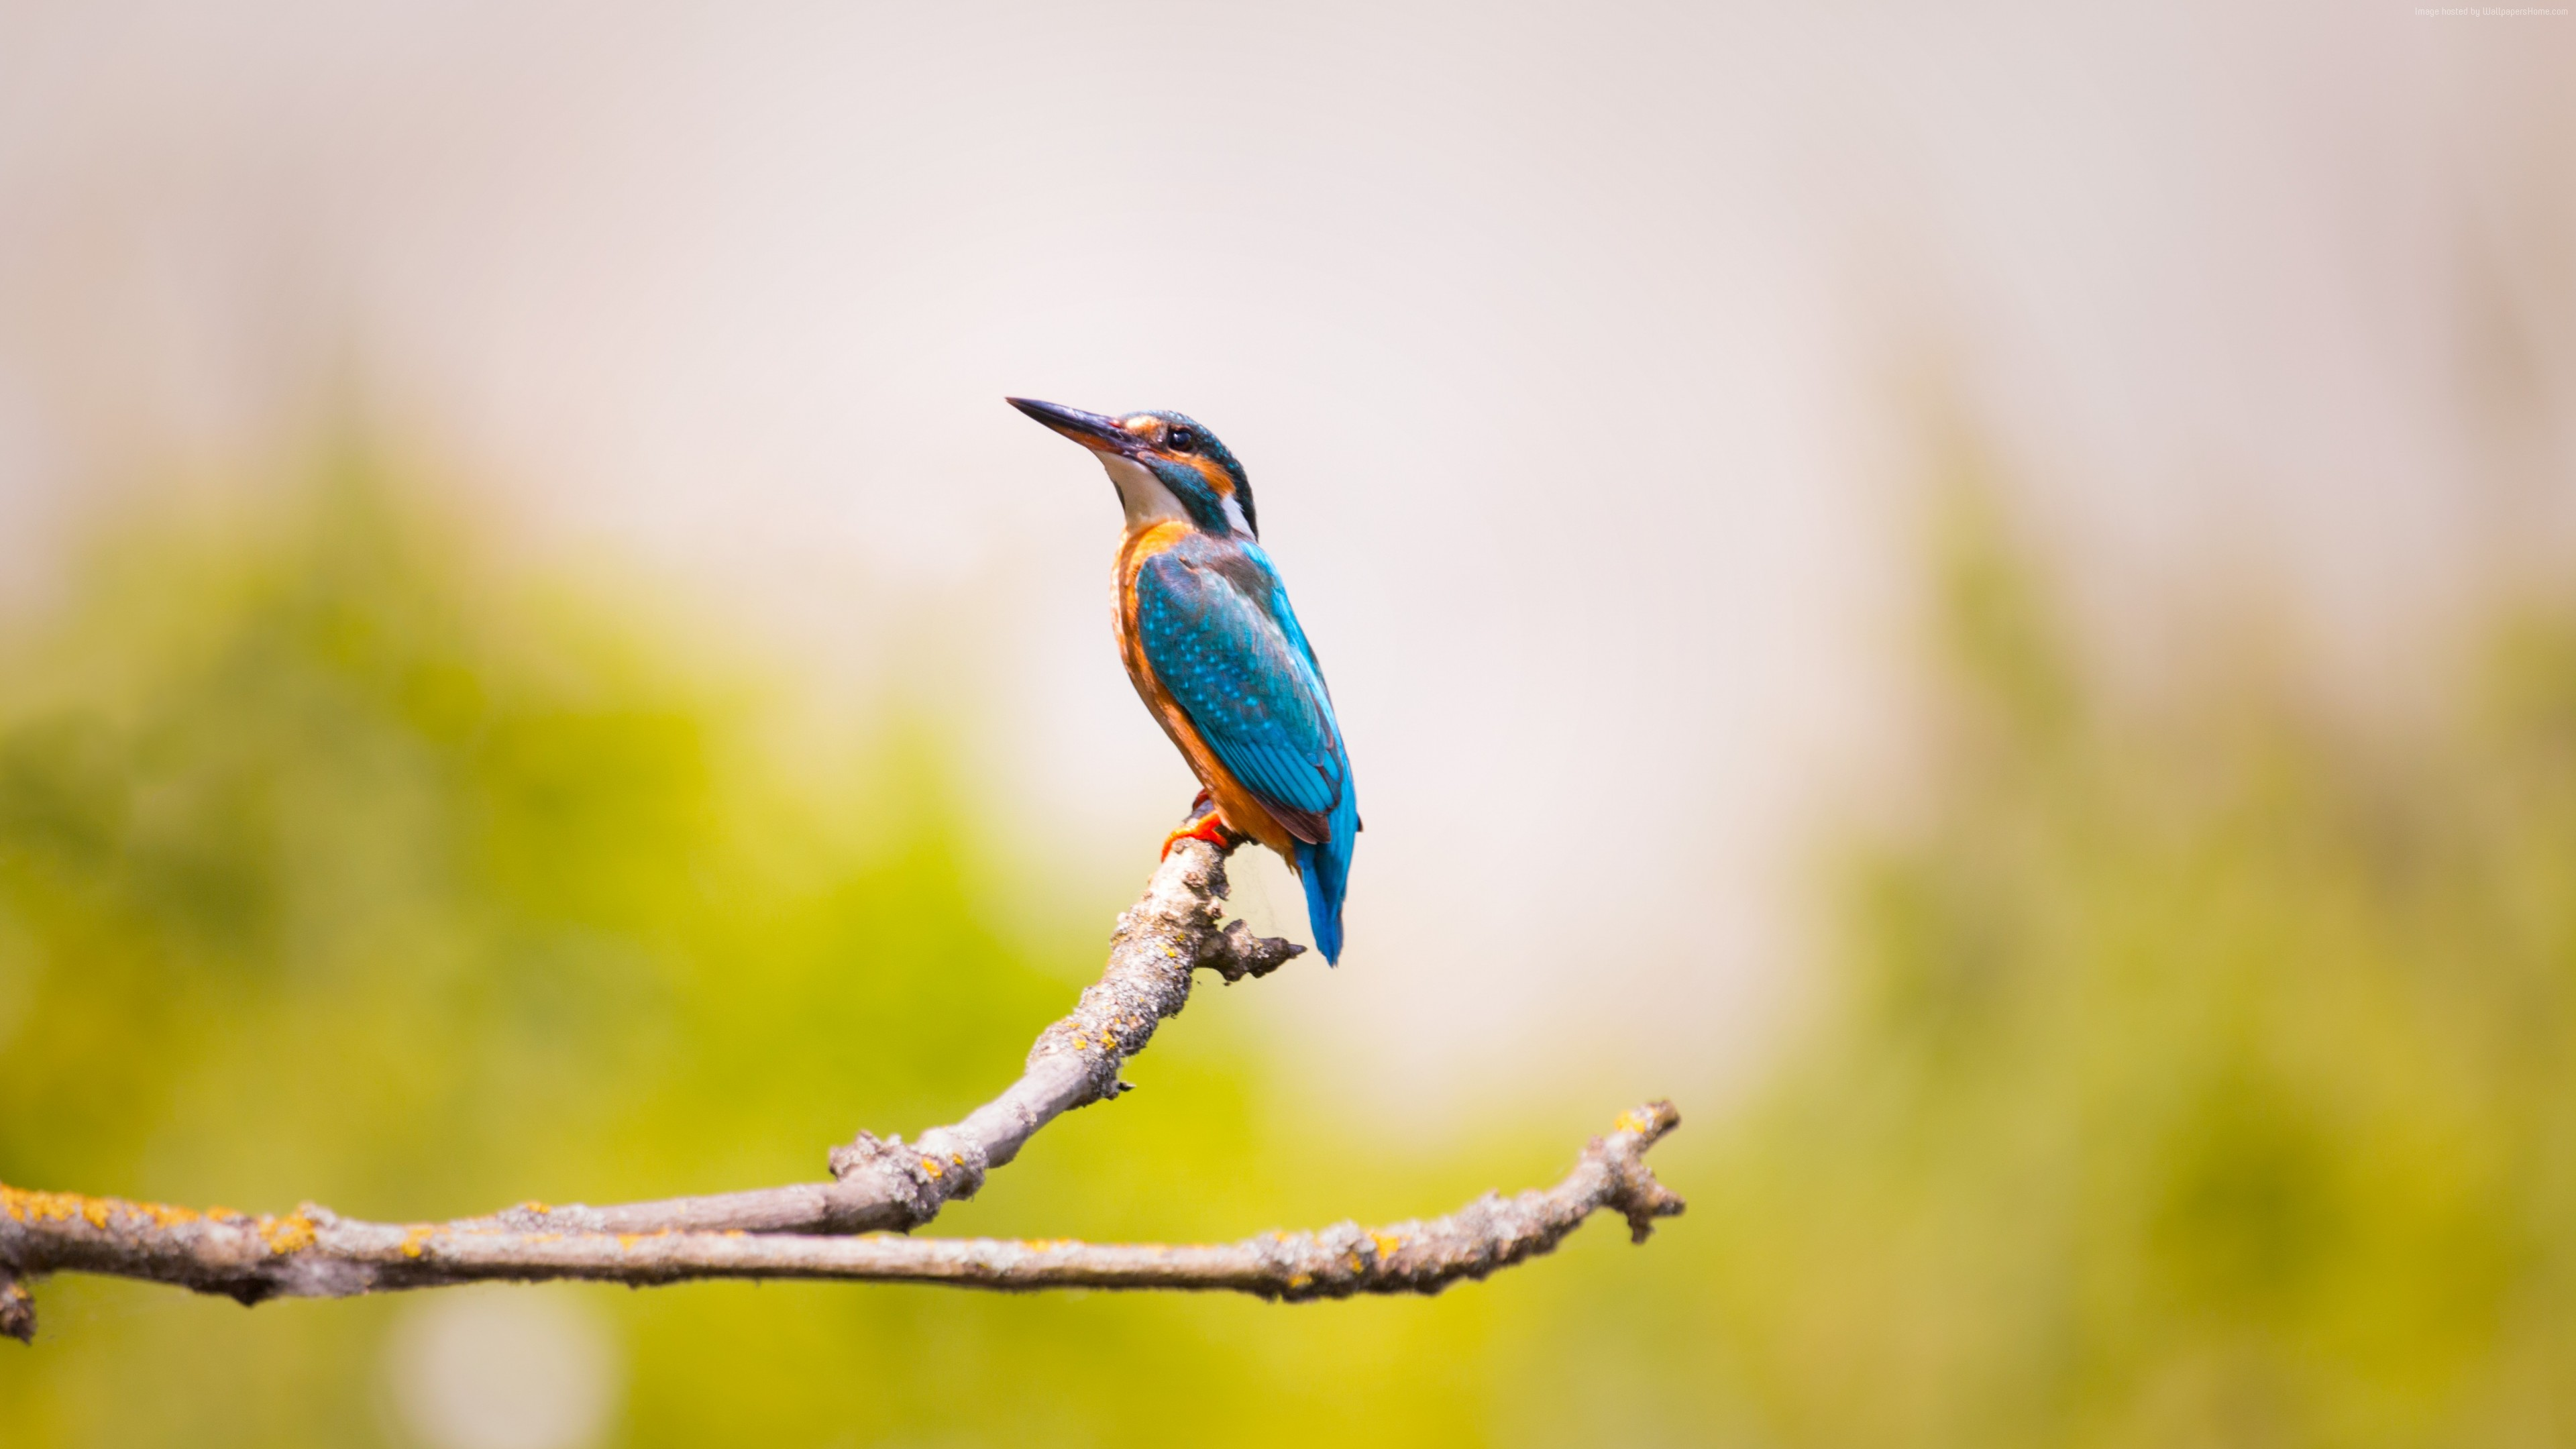 Wallpaper kingfisher, bird, 5k, Animals